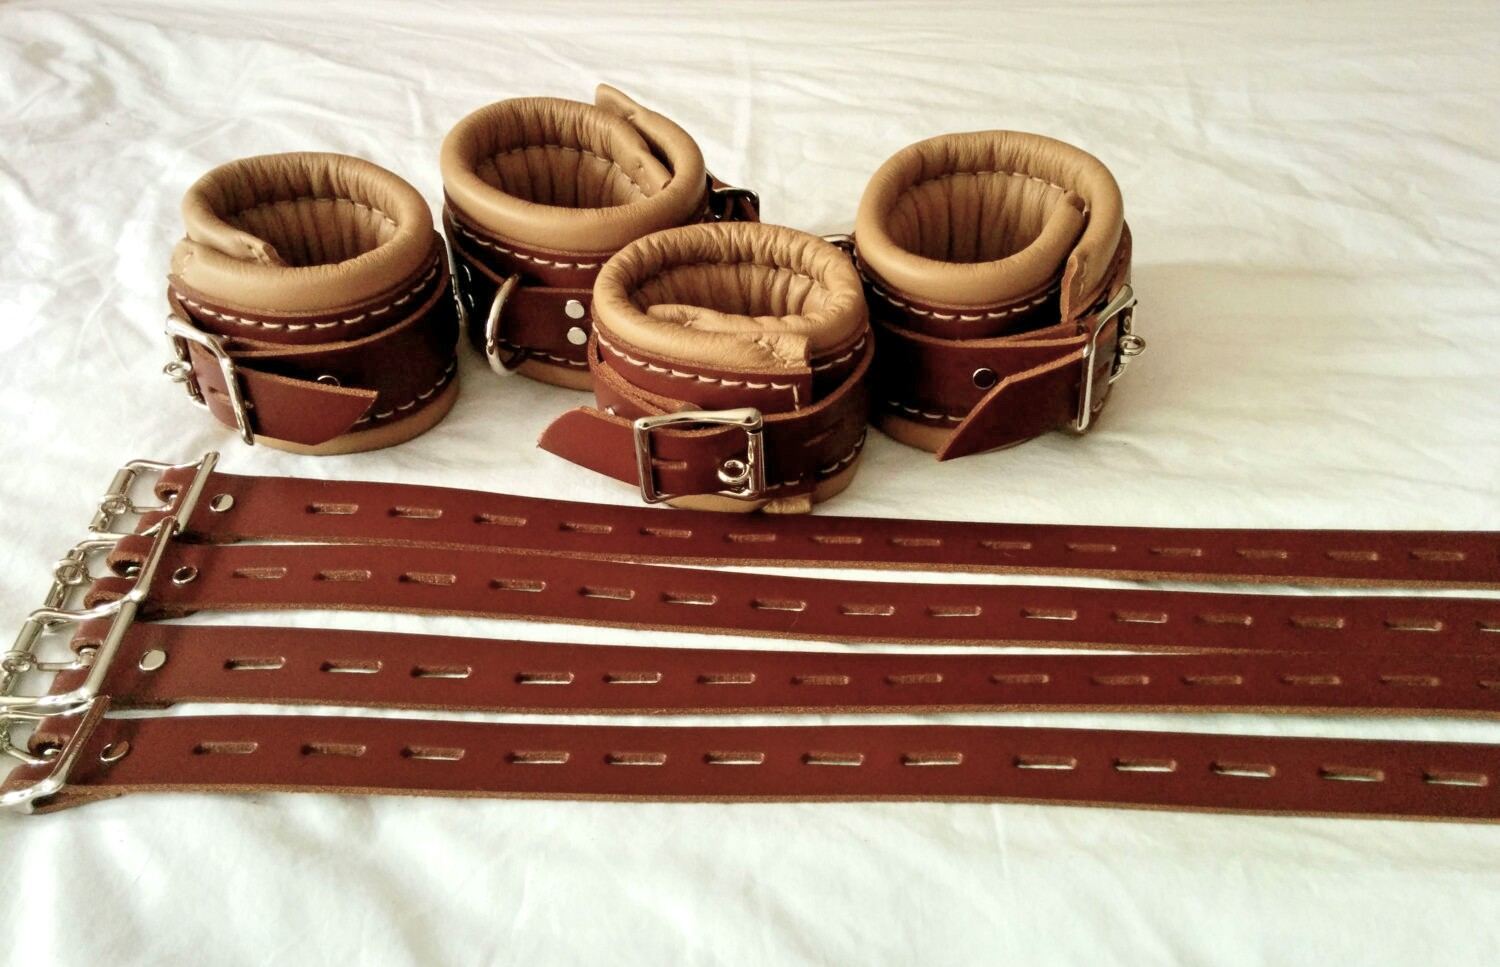 Classic Institutional Wrist and Ankle Restraints With Bed ...